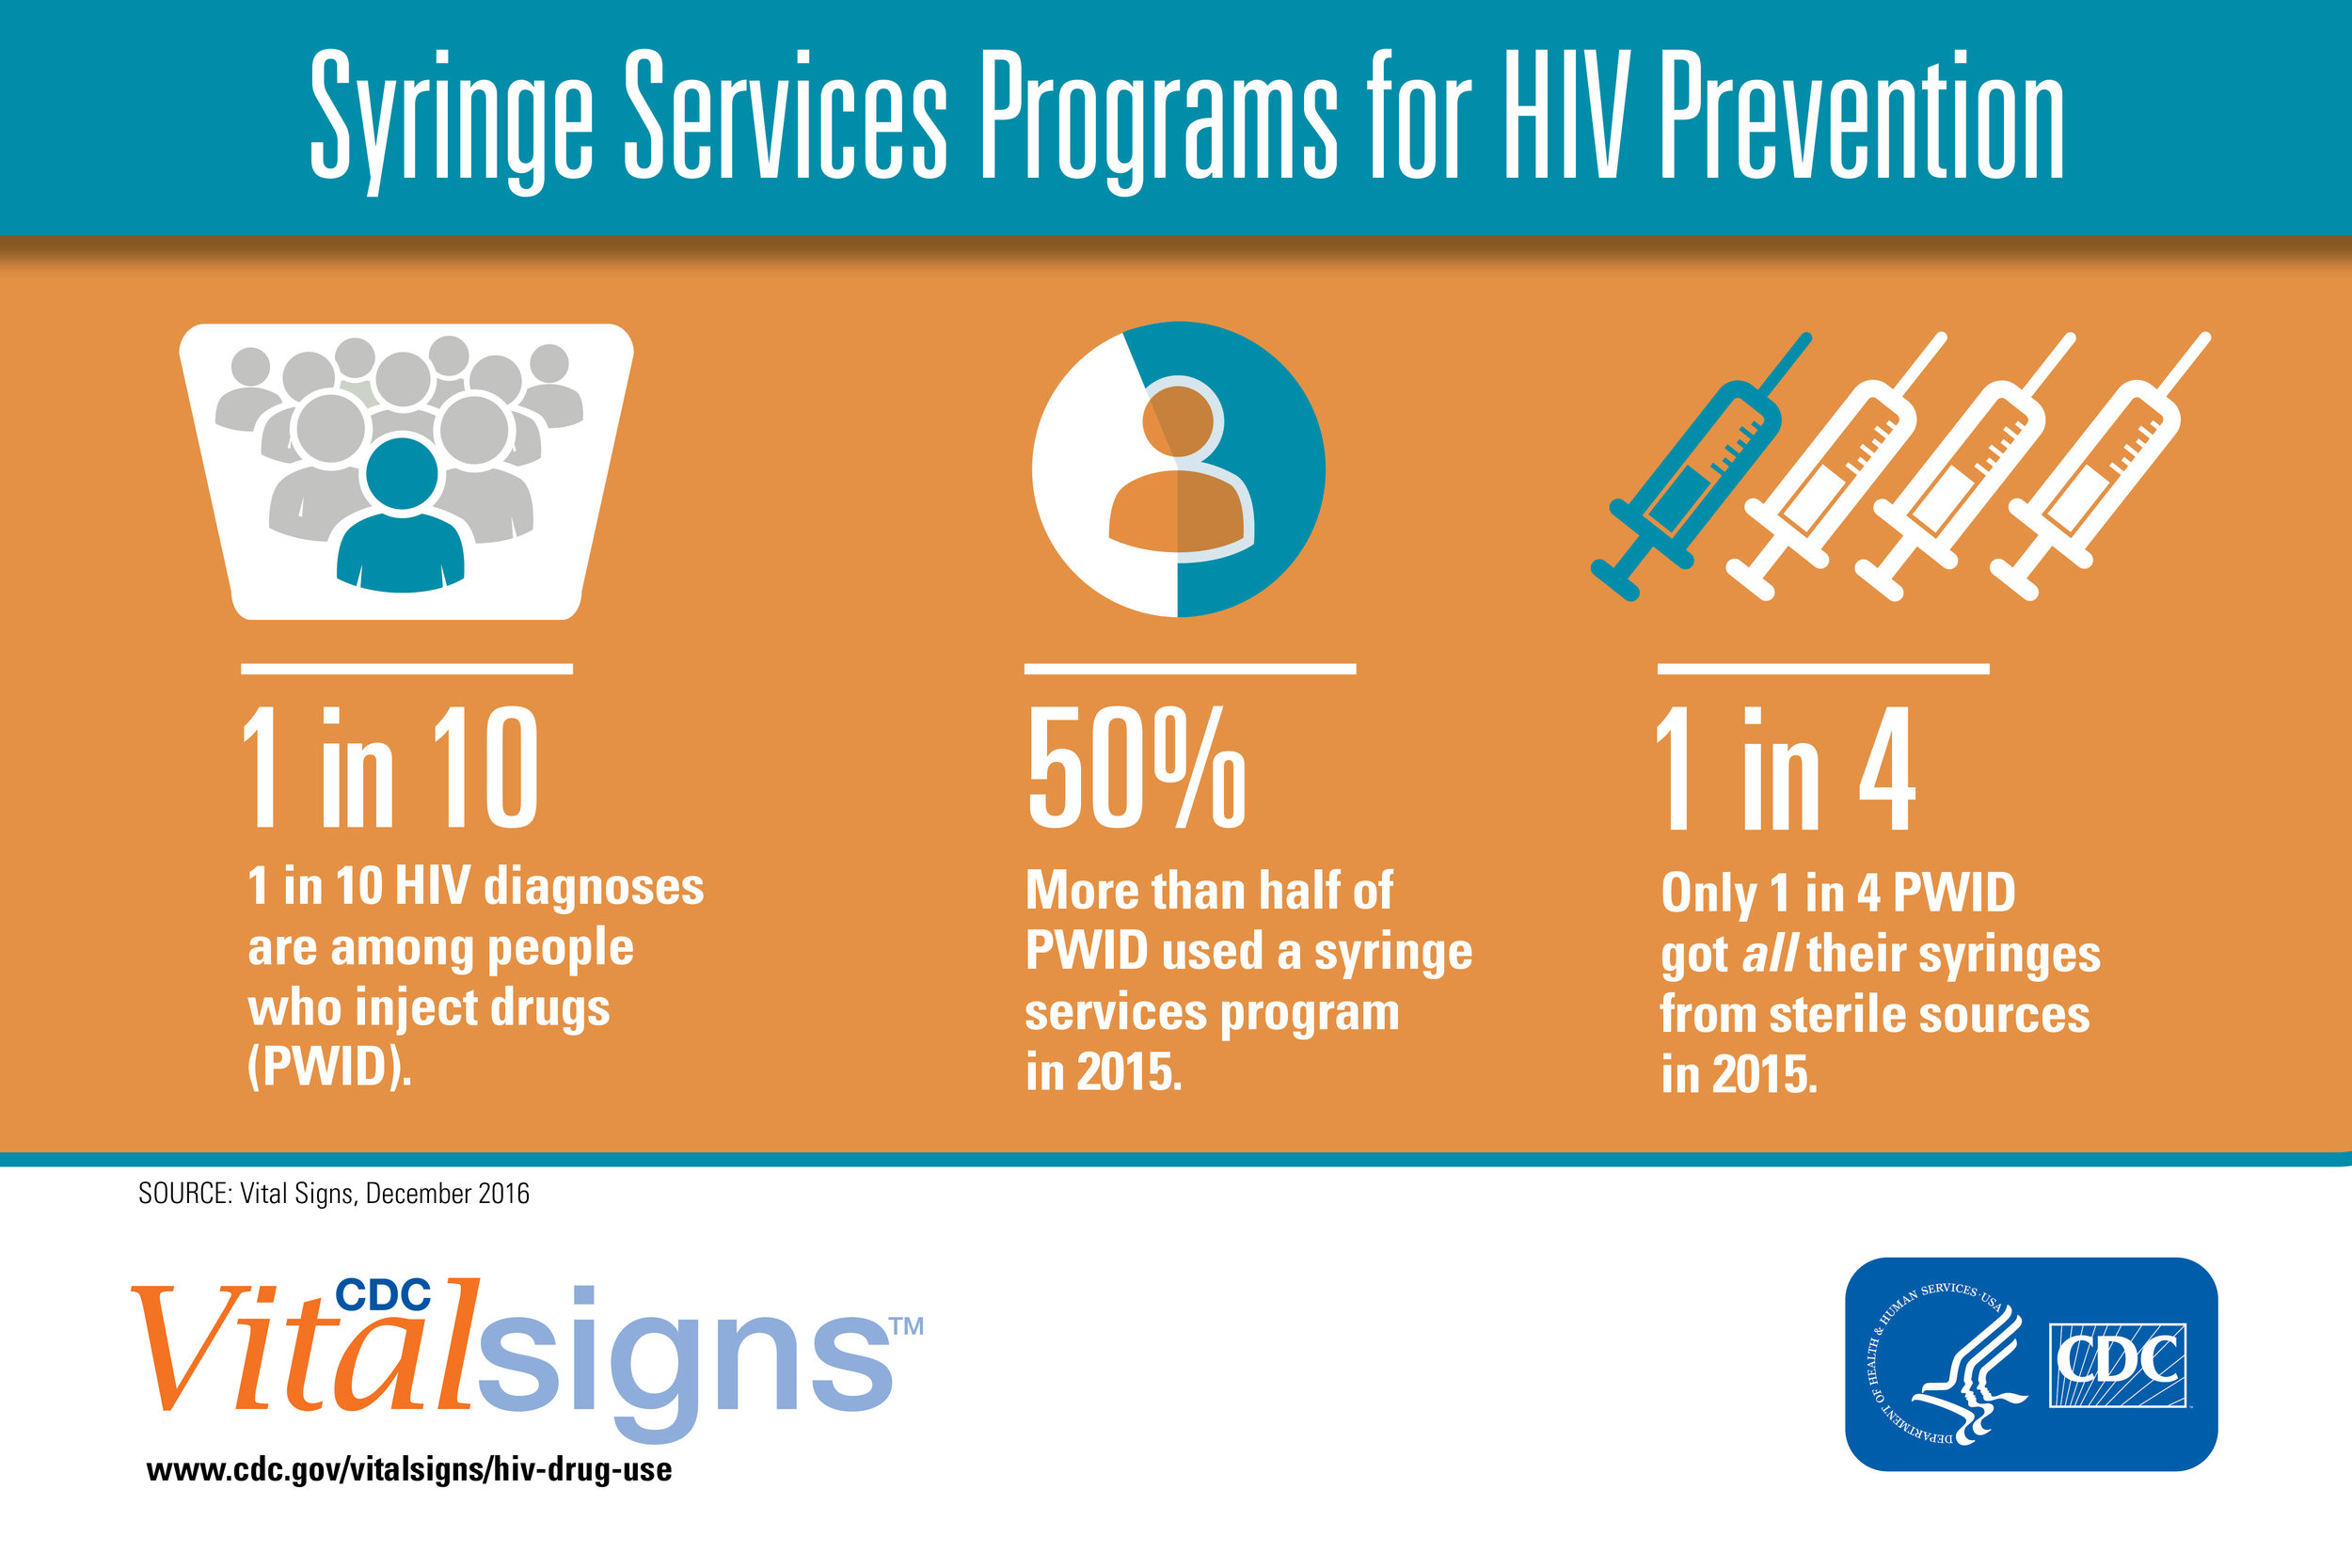 Syringe-Services-Programs-for-HIV-Prevention.jpg